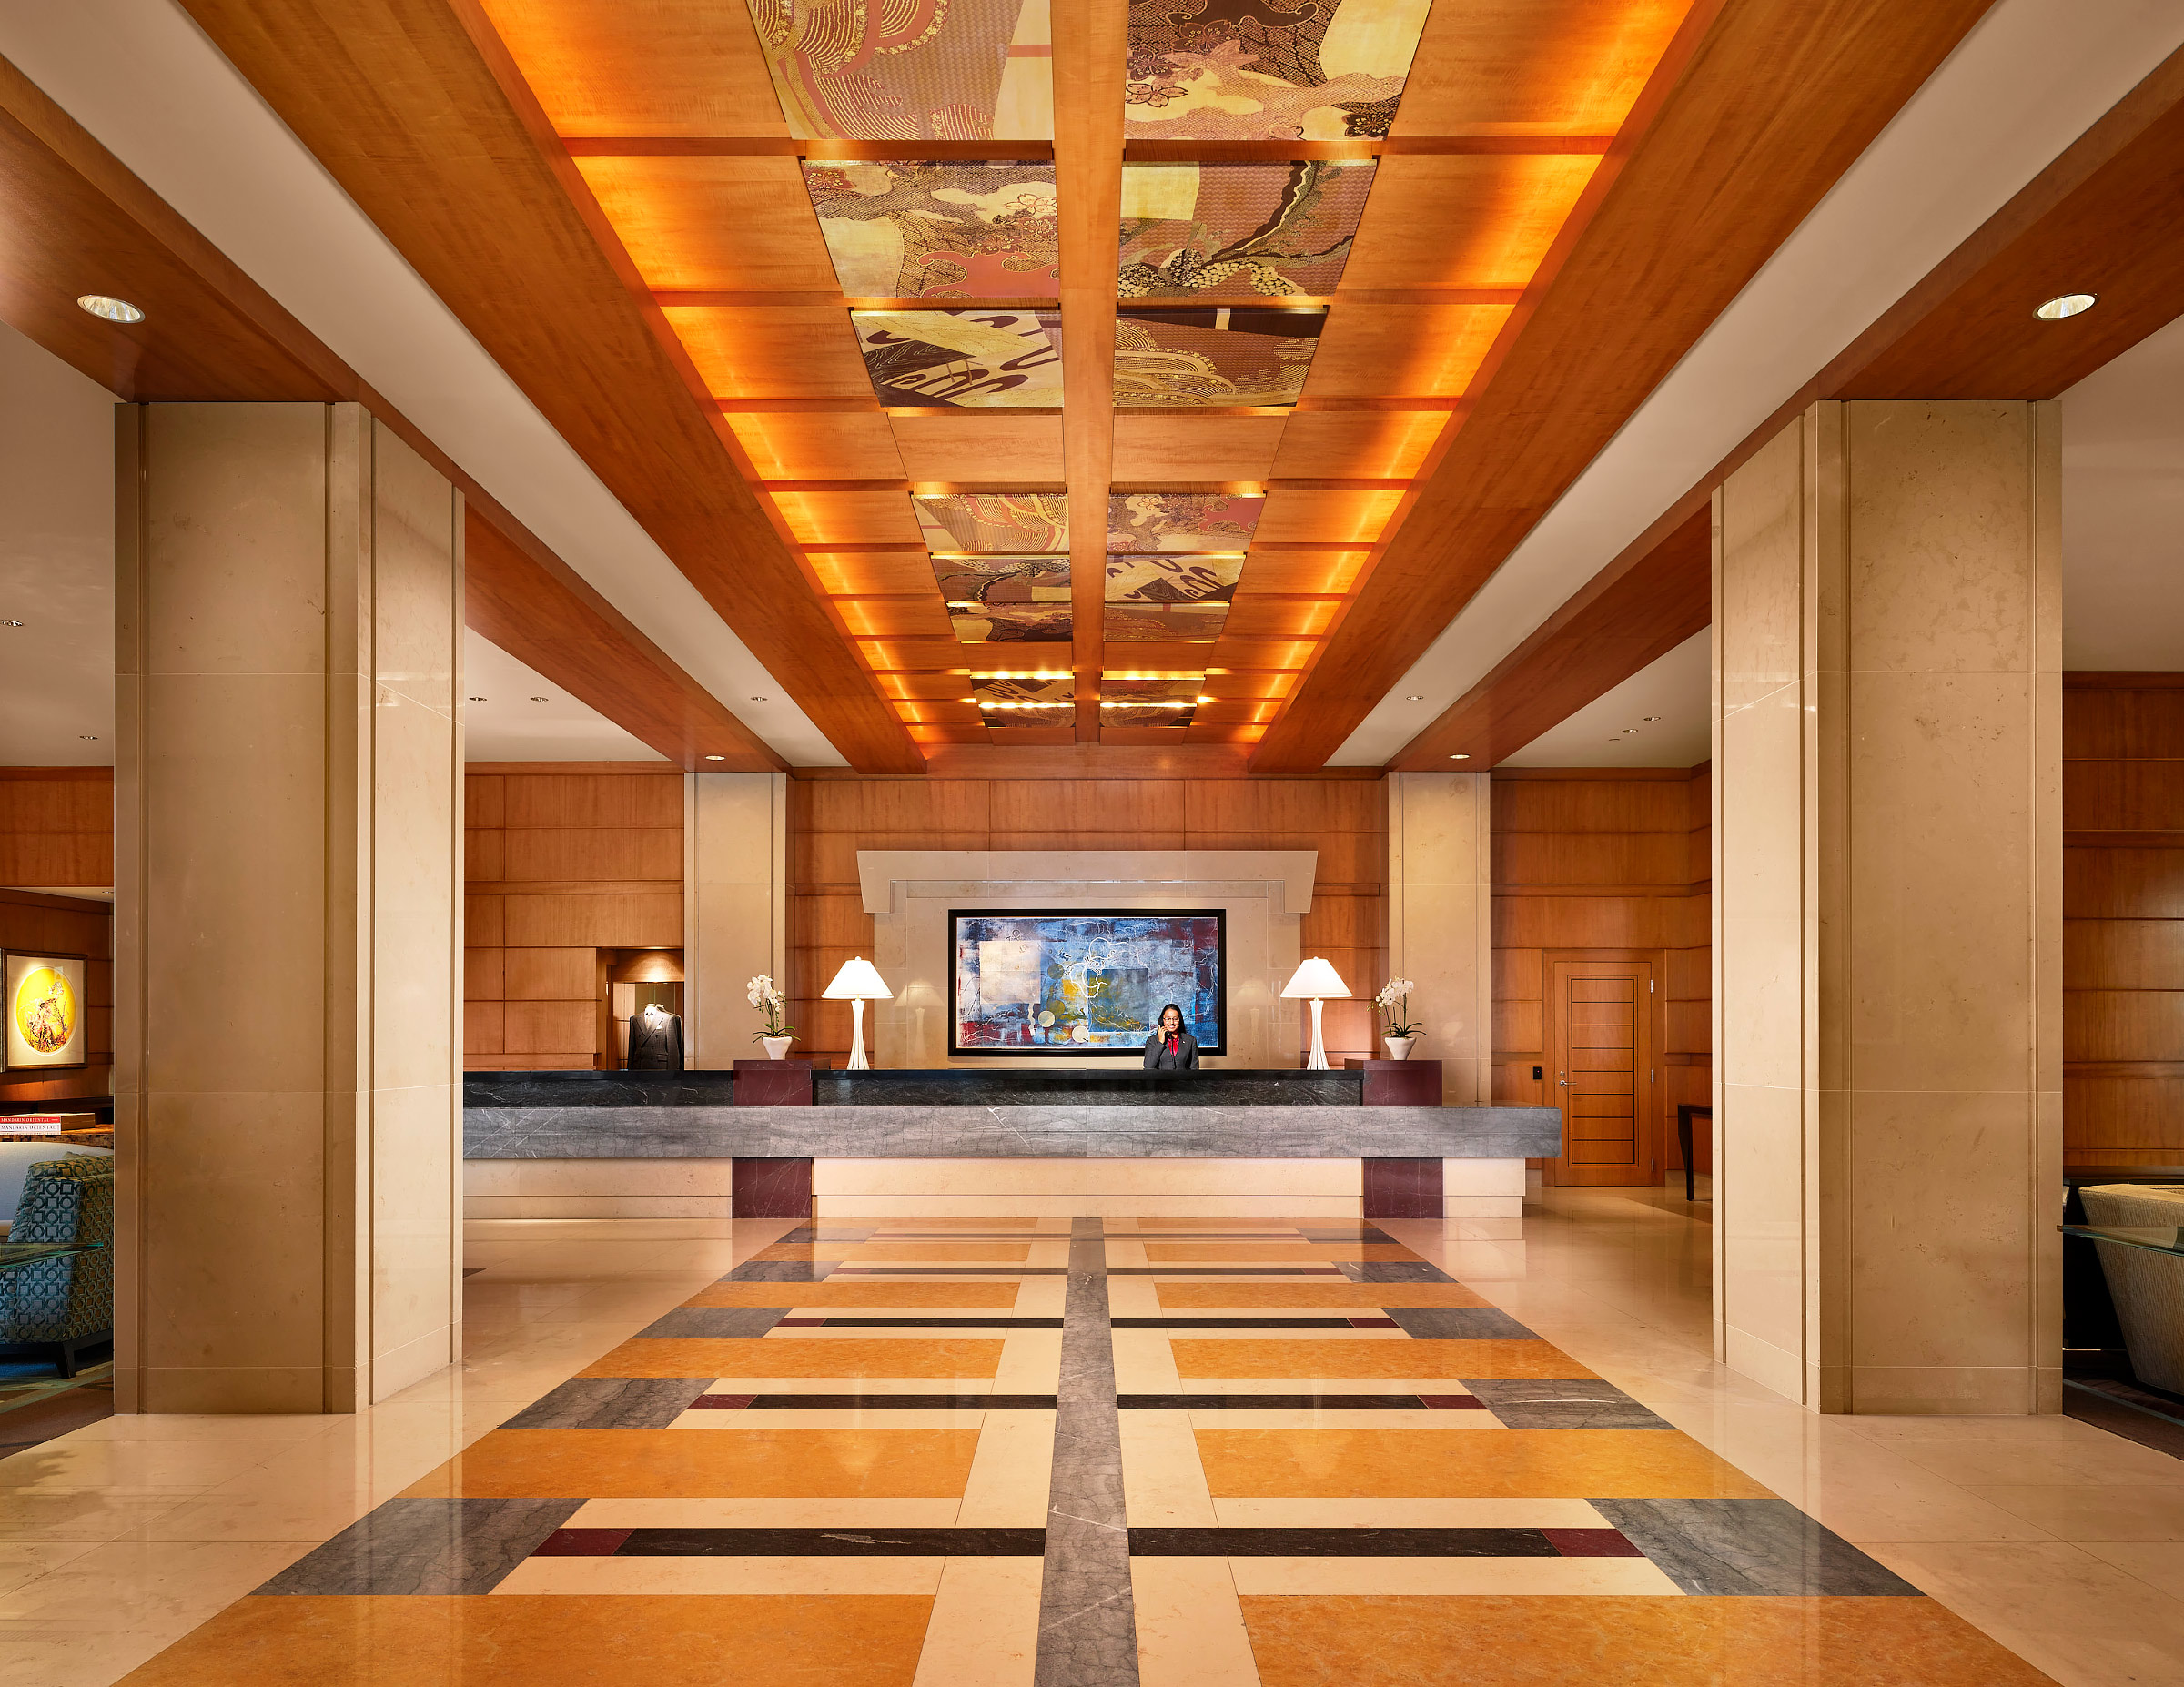 Mandarin-Oriental-Boston-Lobby-Concierge